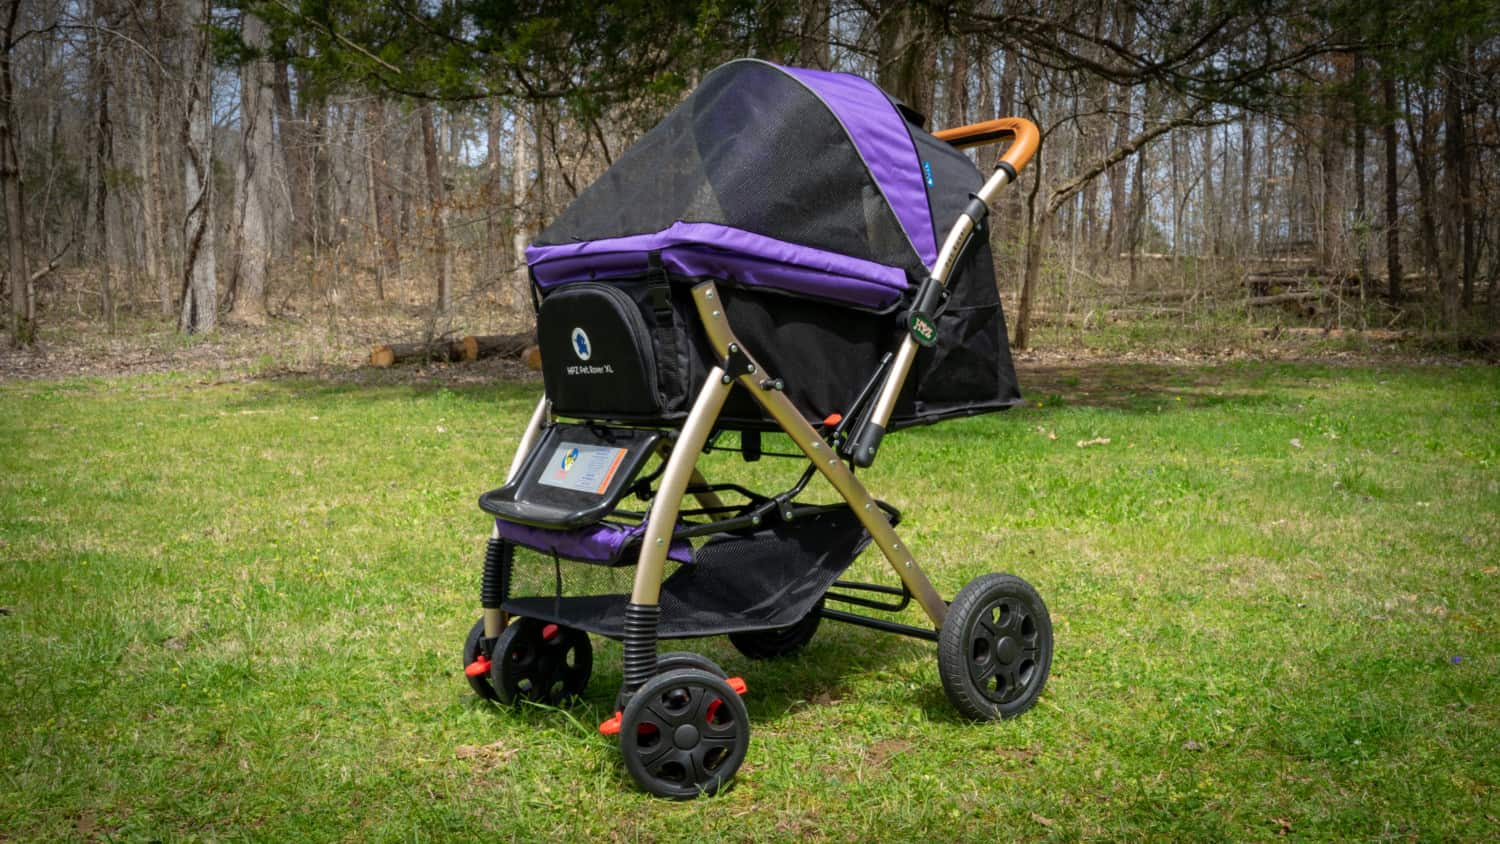 Purple and black Pet Rover XL dog stroller